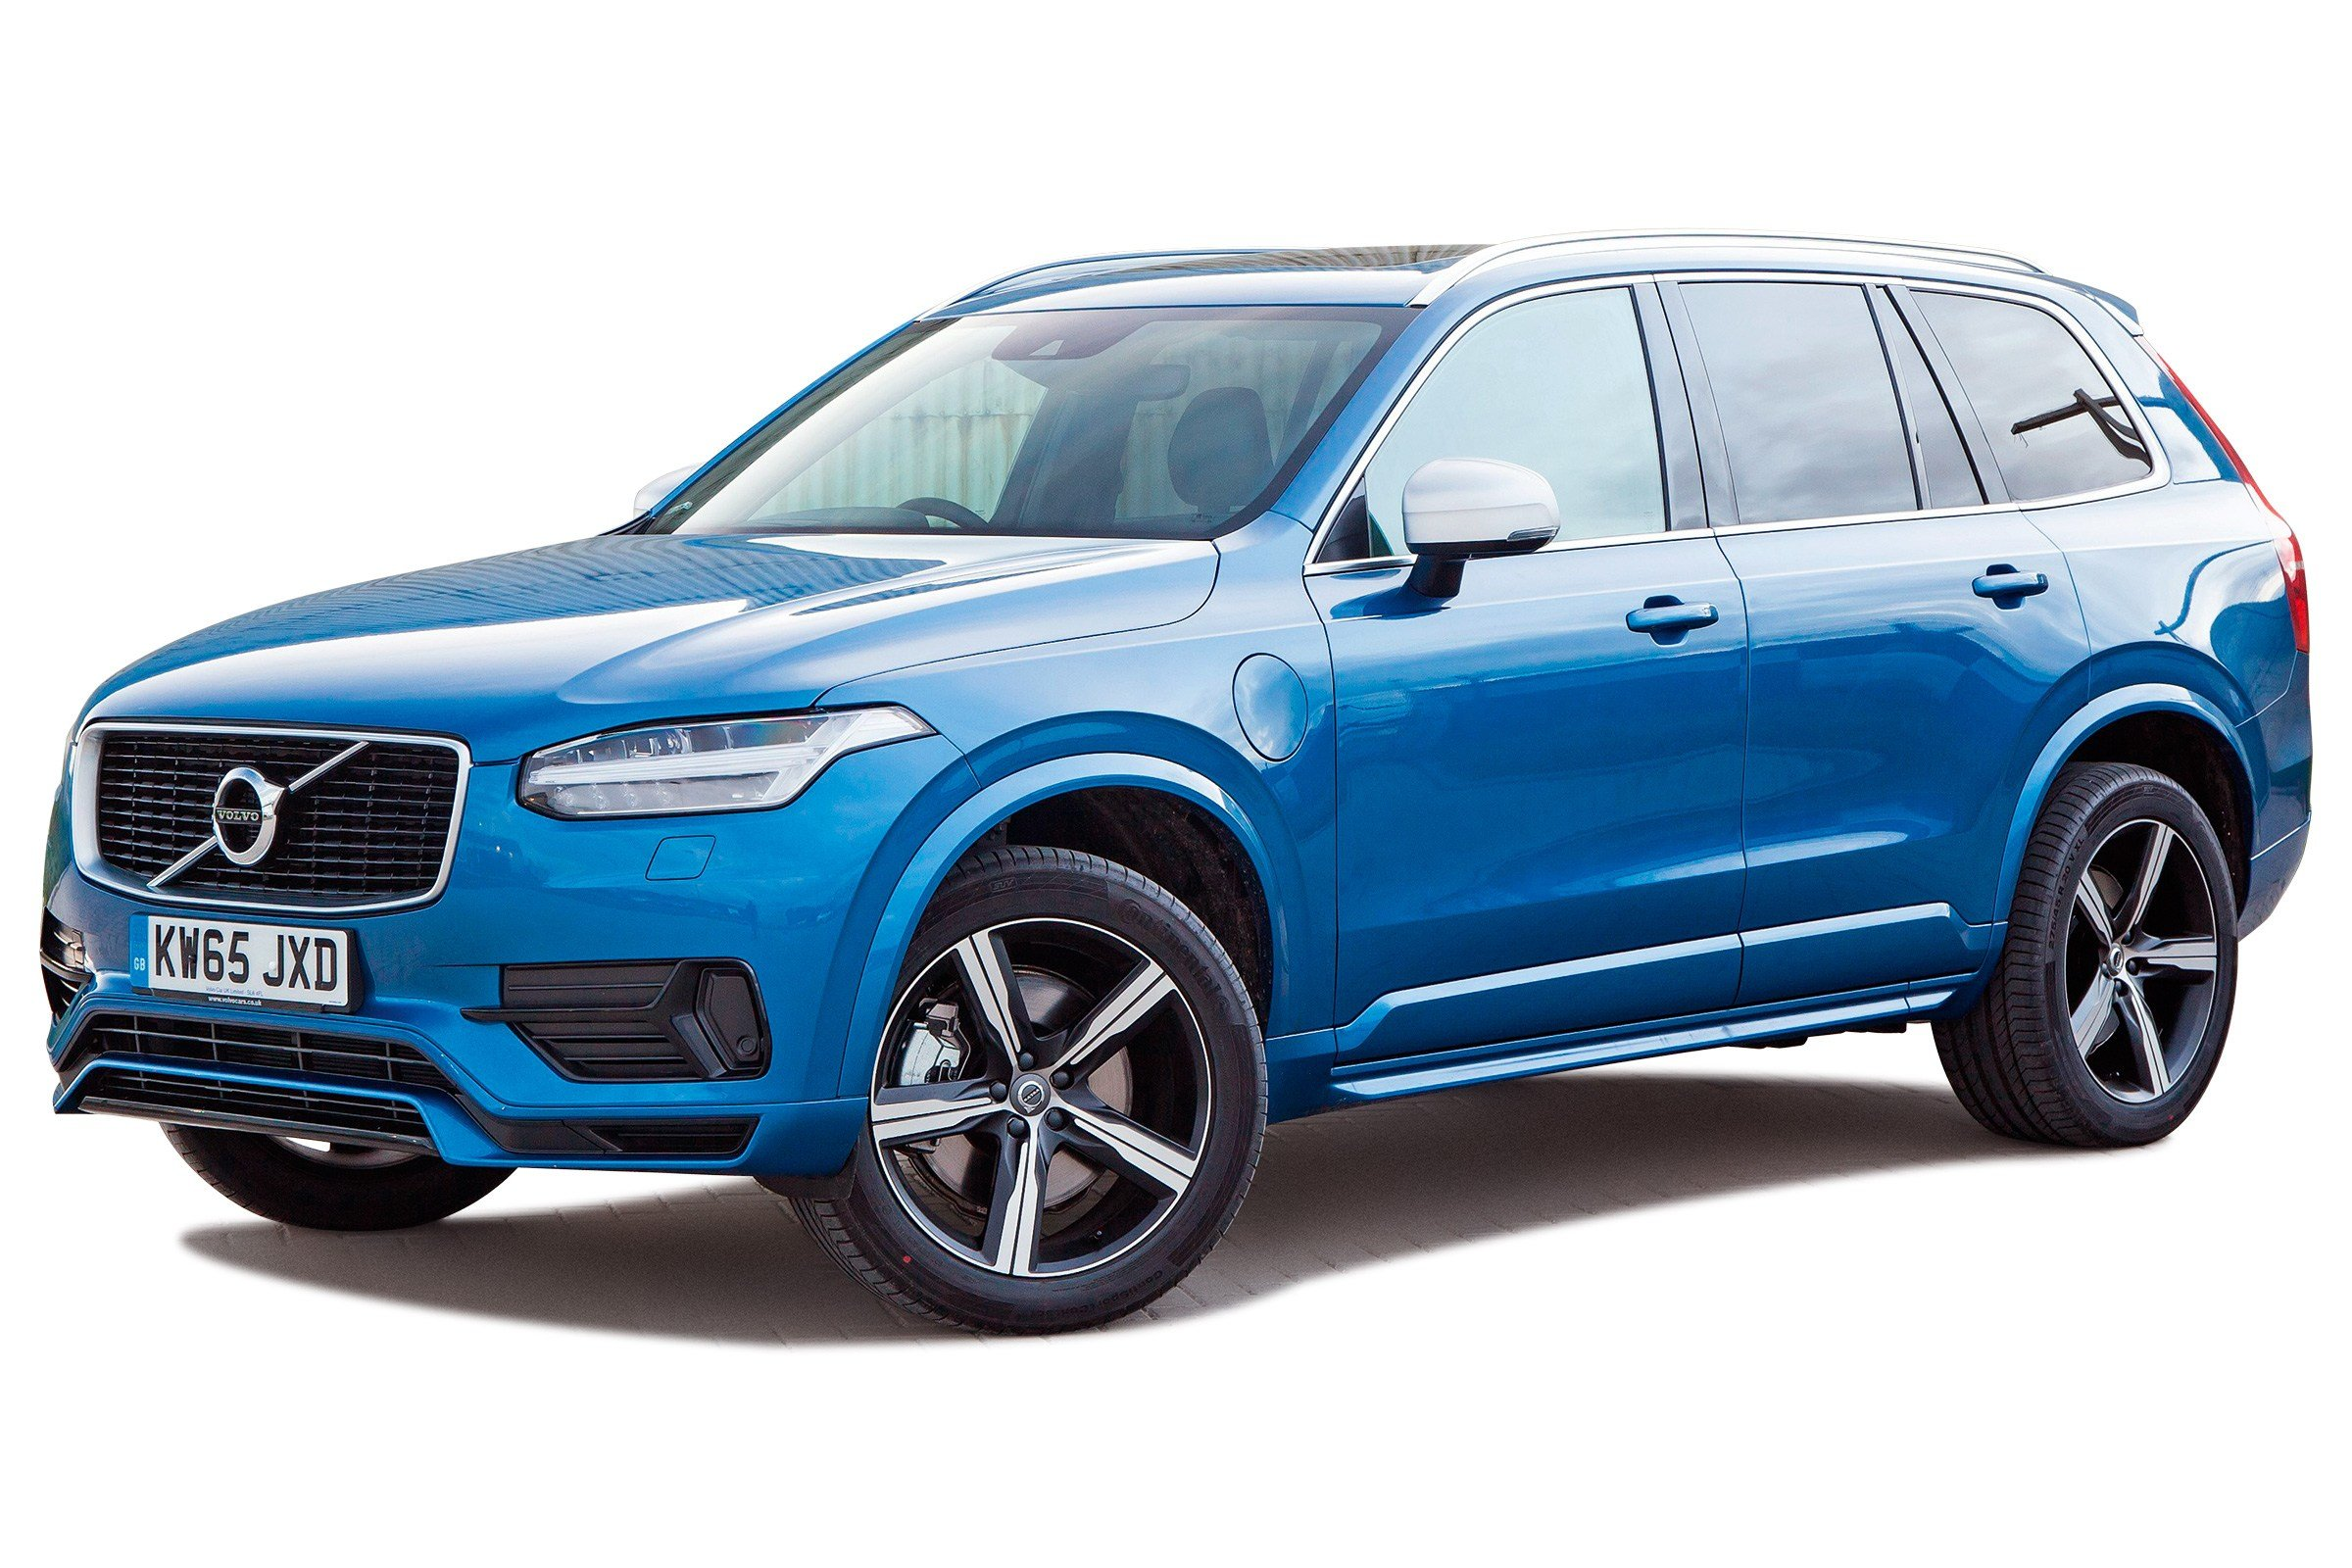 Latest Volvo Xc90 Suv Review Carbuyer Free Download